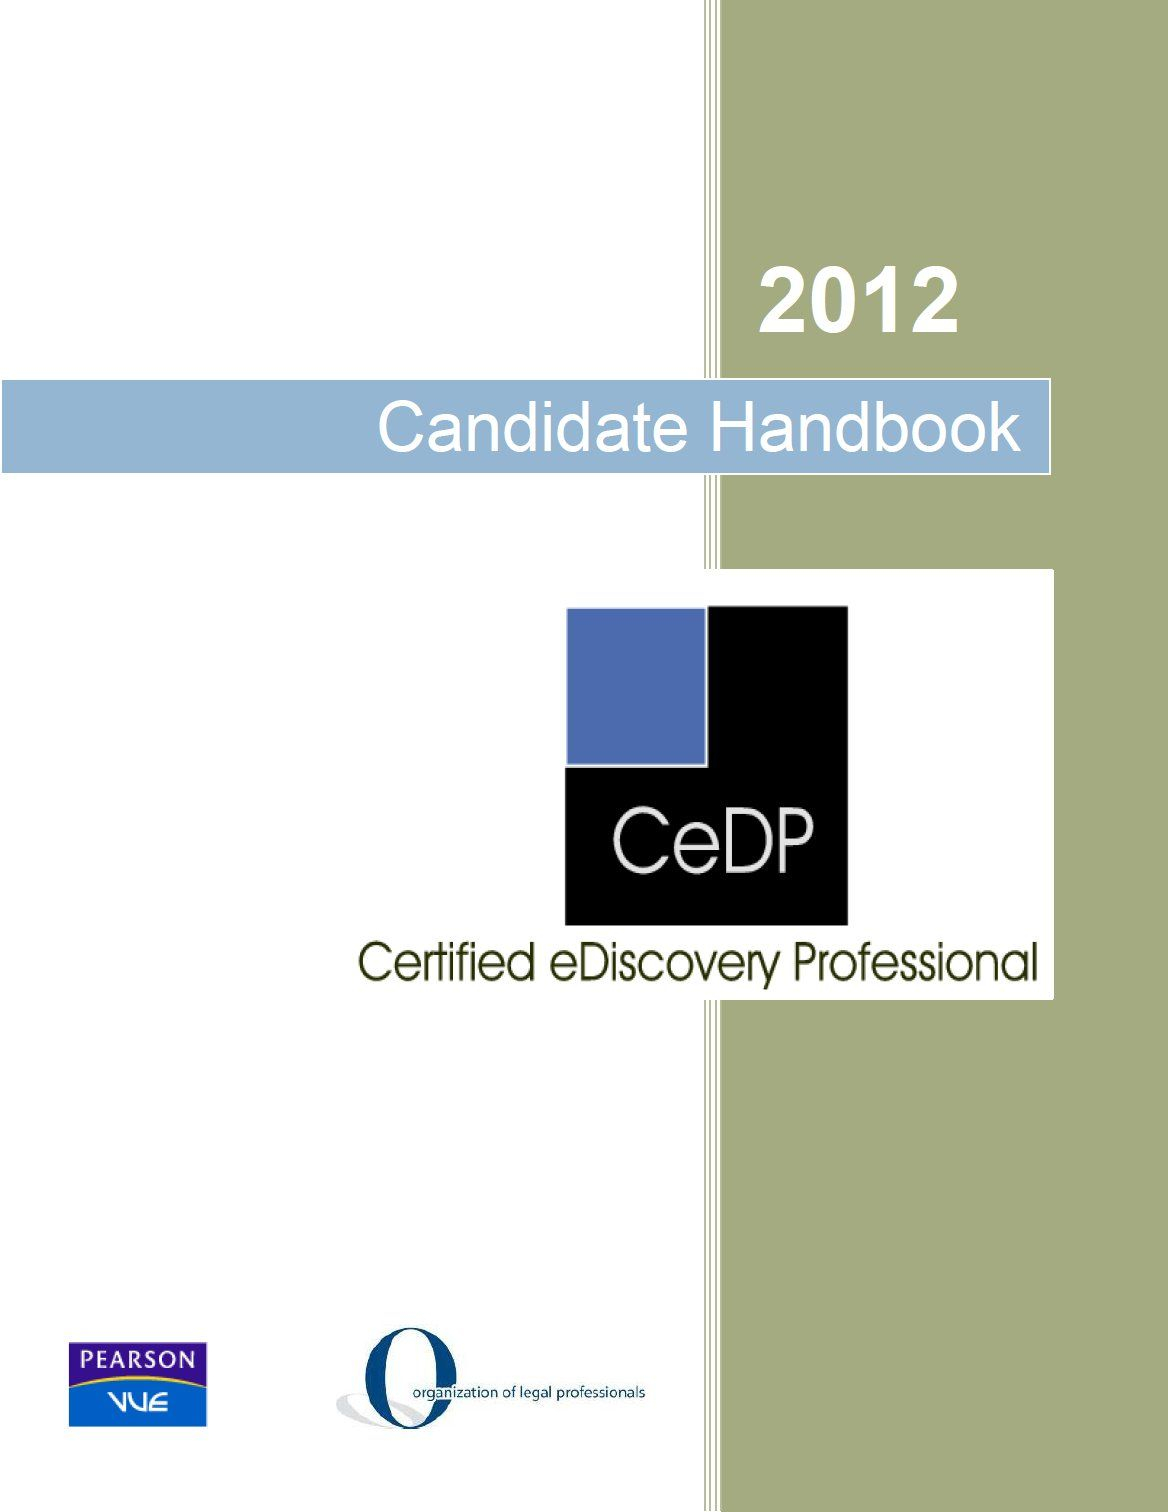 Take The Cedp Certified Ediscovery Professional Exam Demonstrate